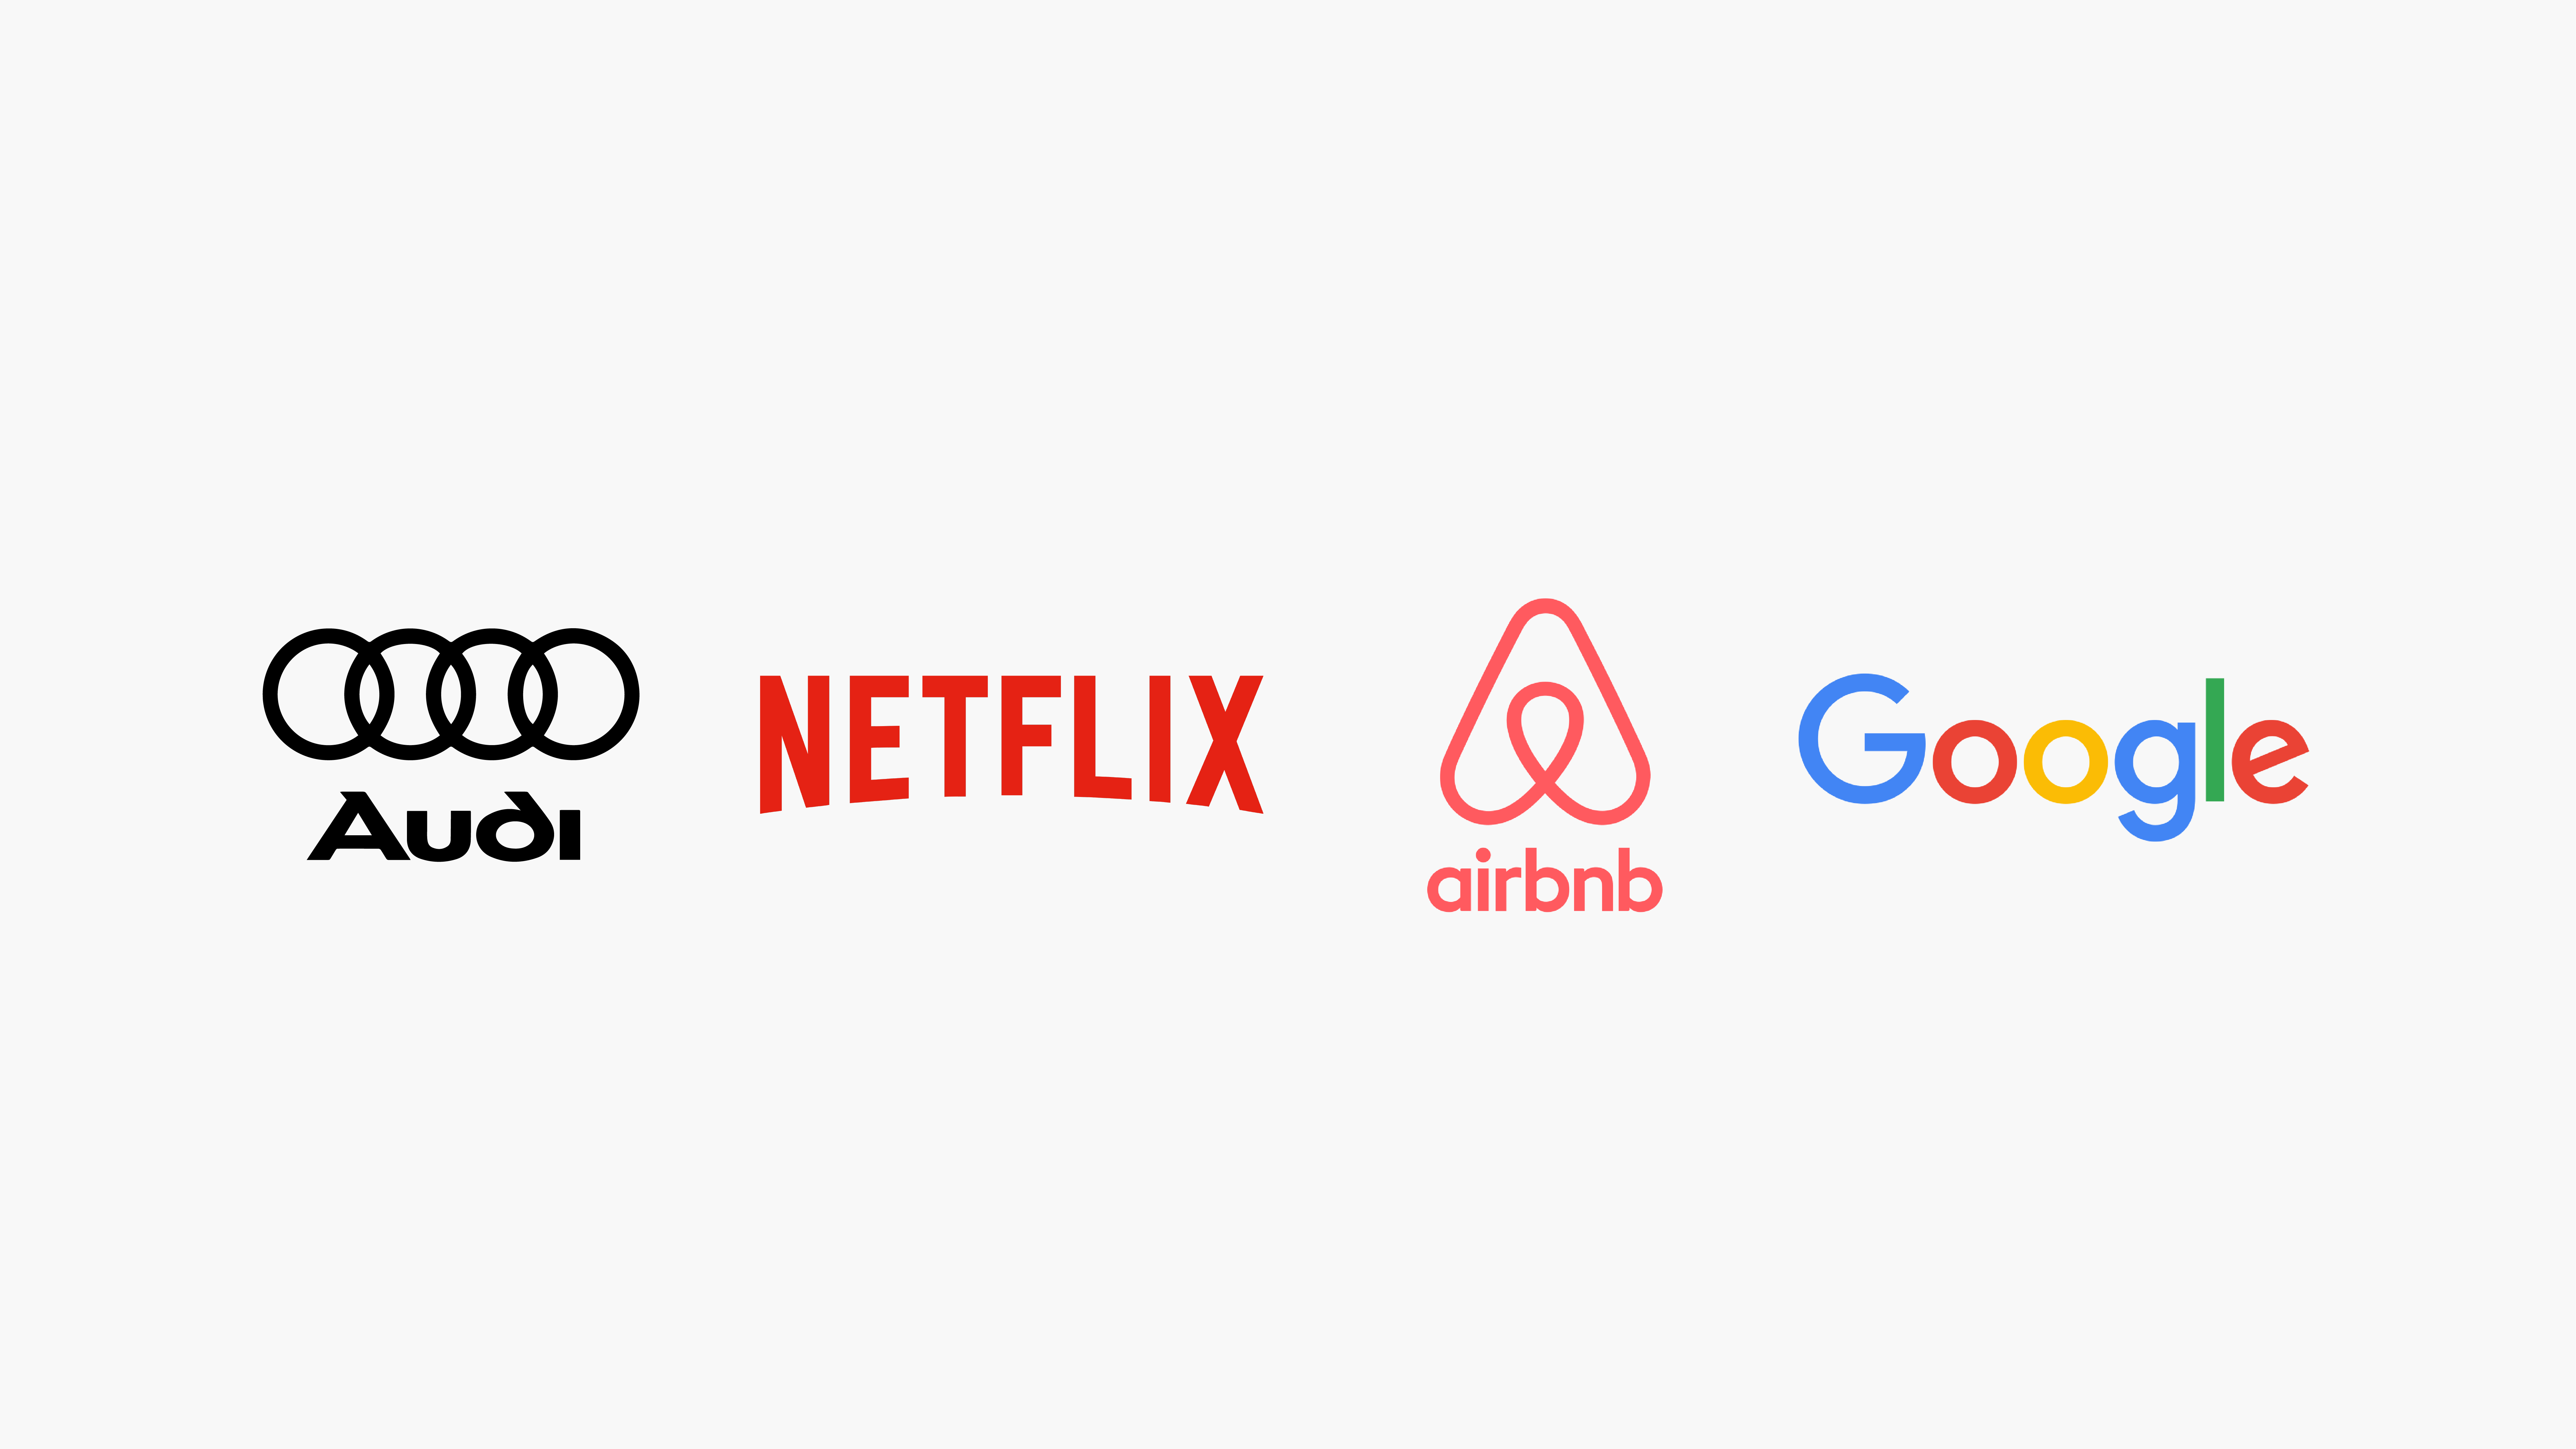 Audi, Netflix, Airbnb and Google are examples of companies that use design systems.